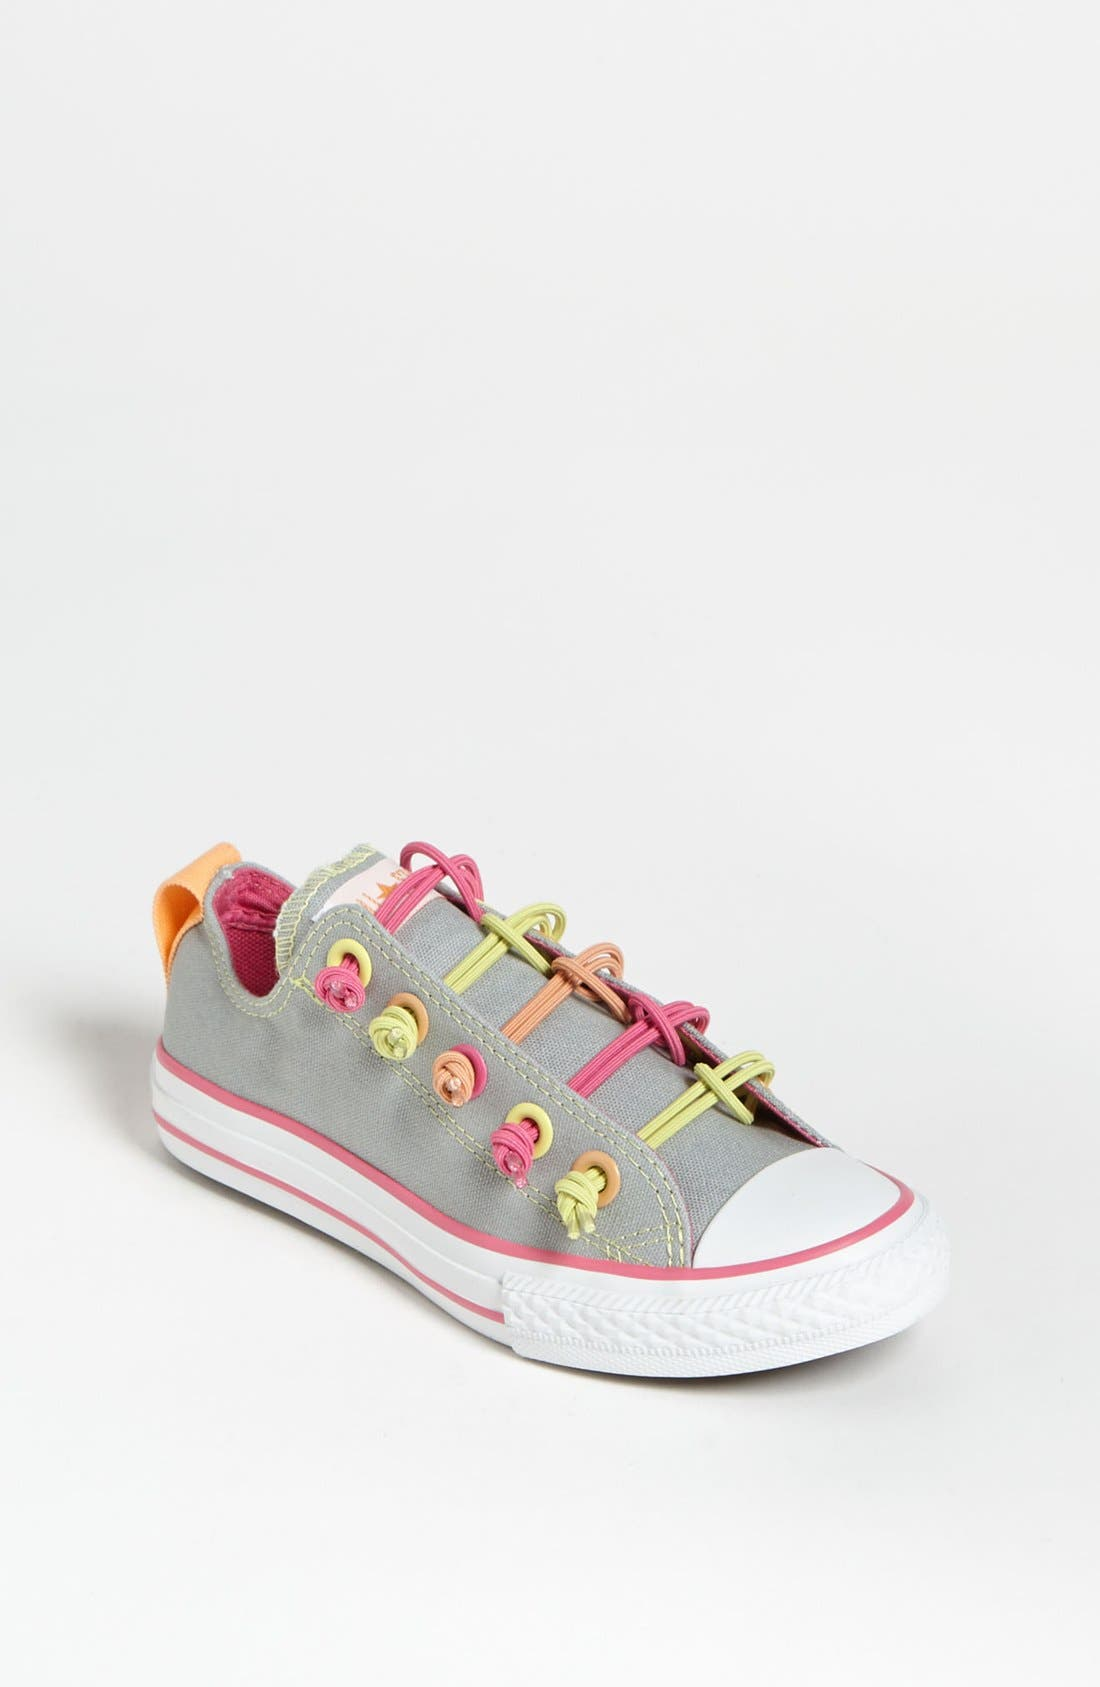 Main Image - Converse All Star® 'Loop 2 Knot' Sneaker (Toddler, Little Kid & Big Kid)